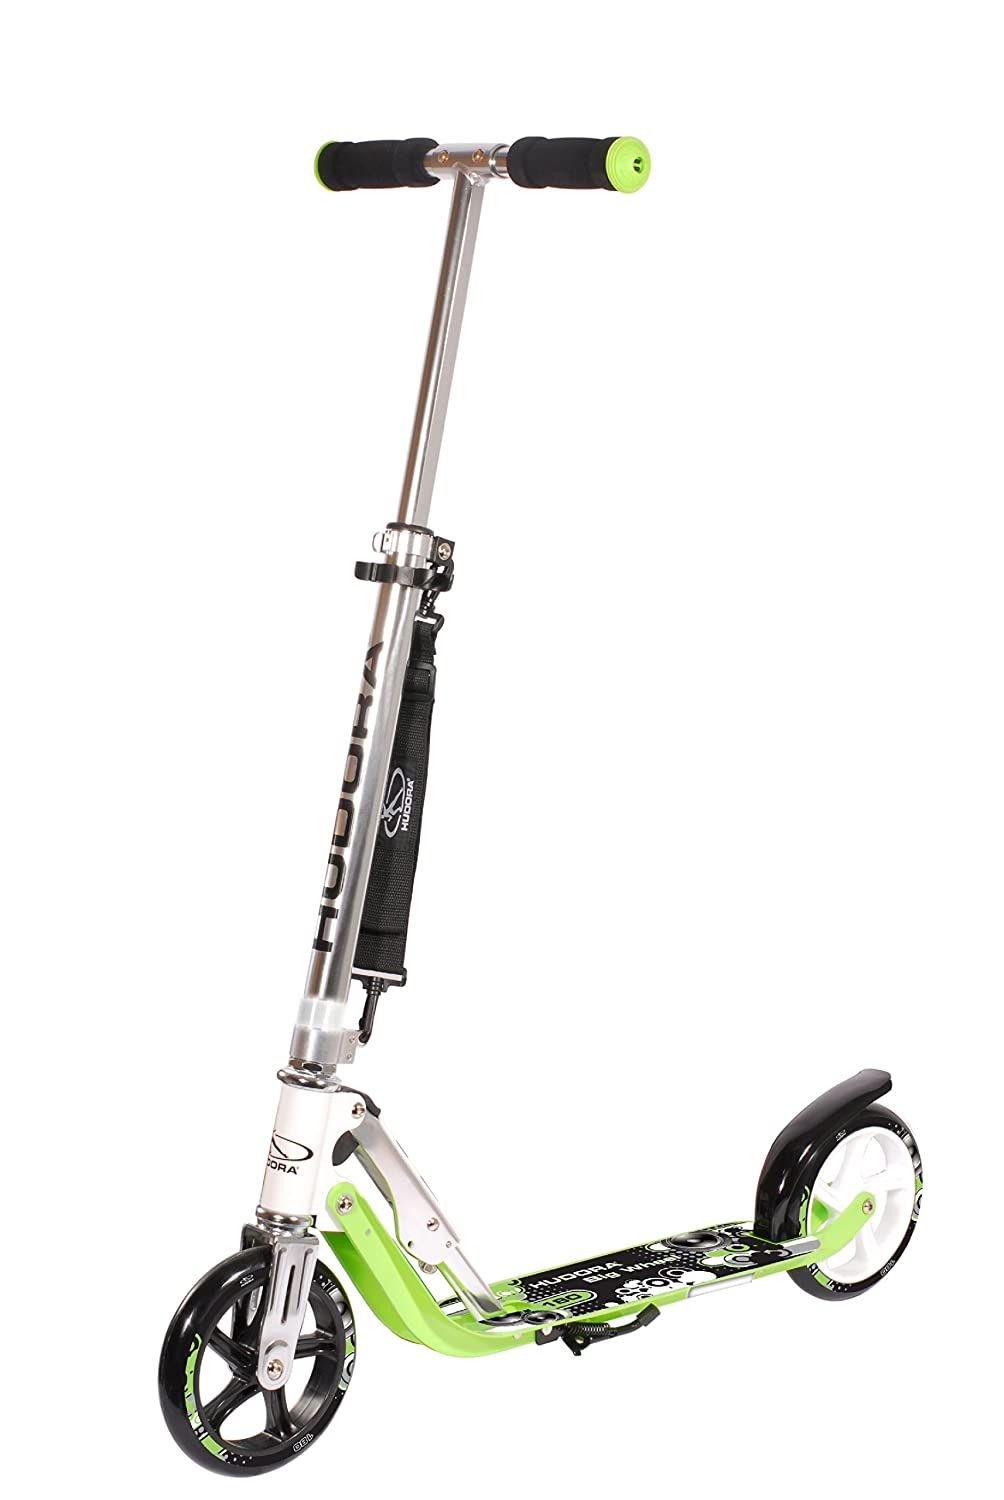 Hudora Big Wheel 180 - Patinete clásico, color verde 14745